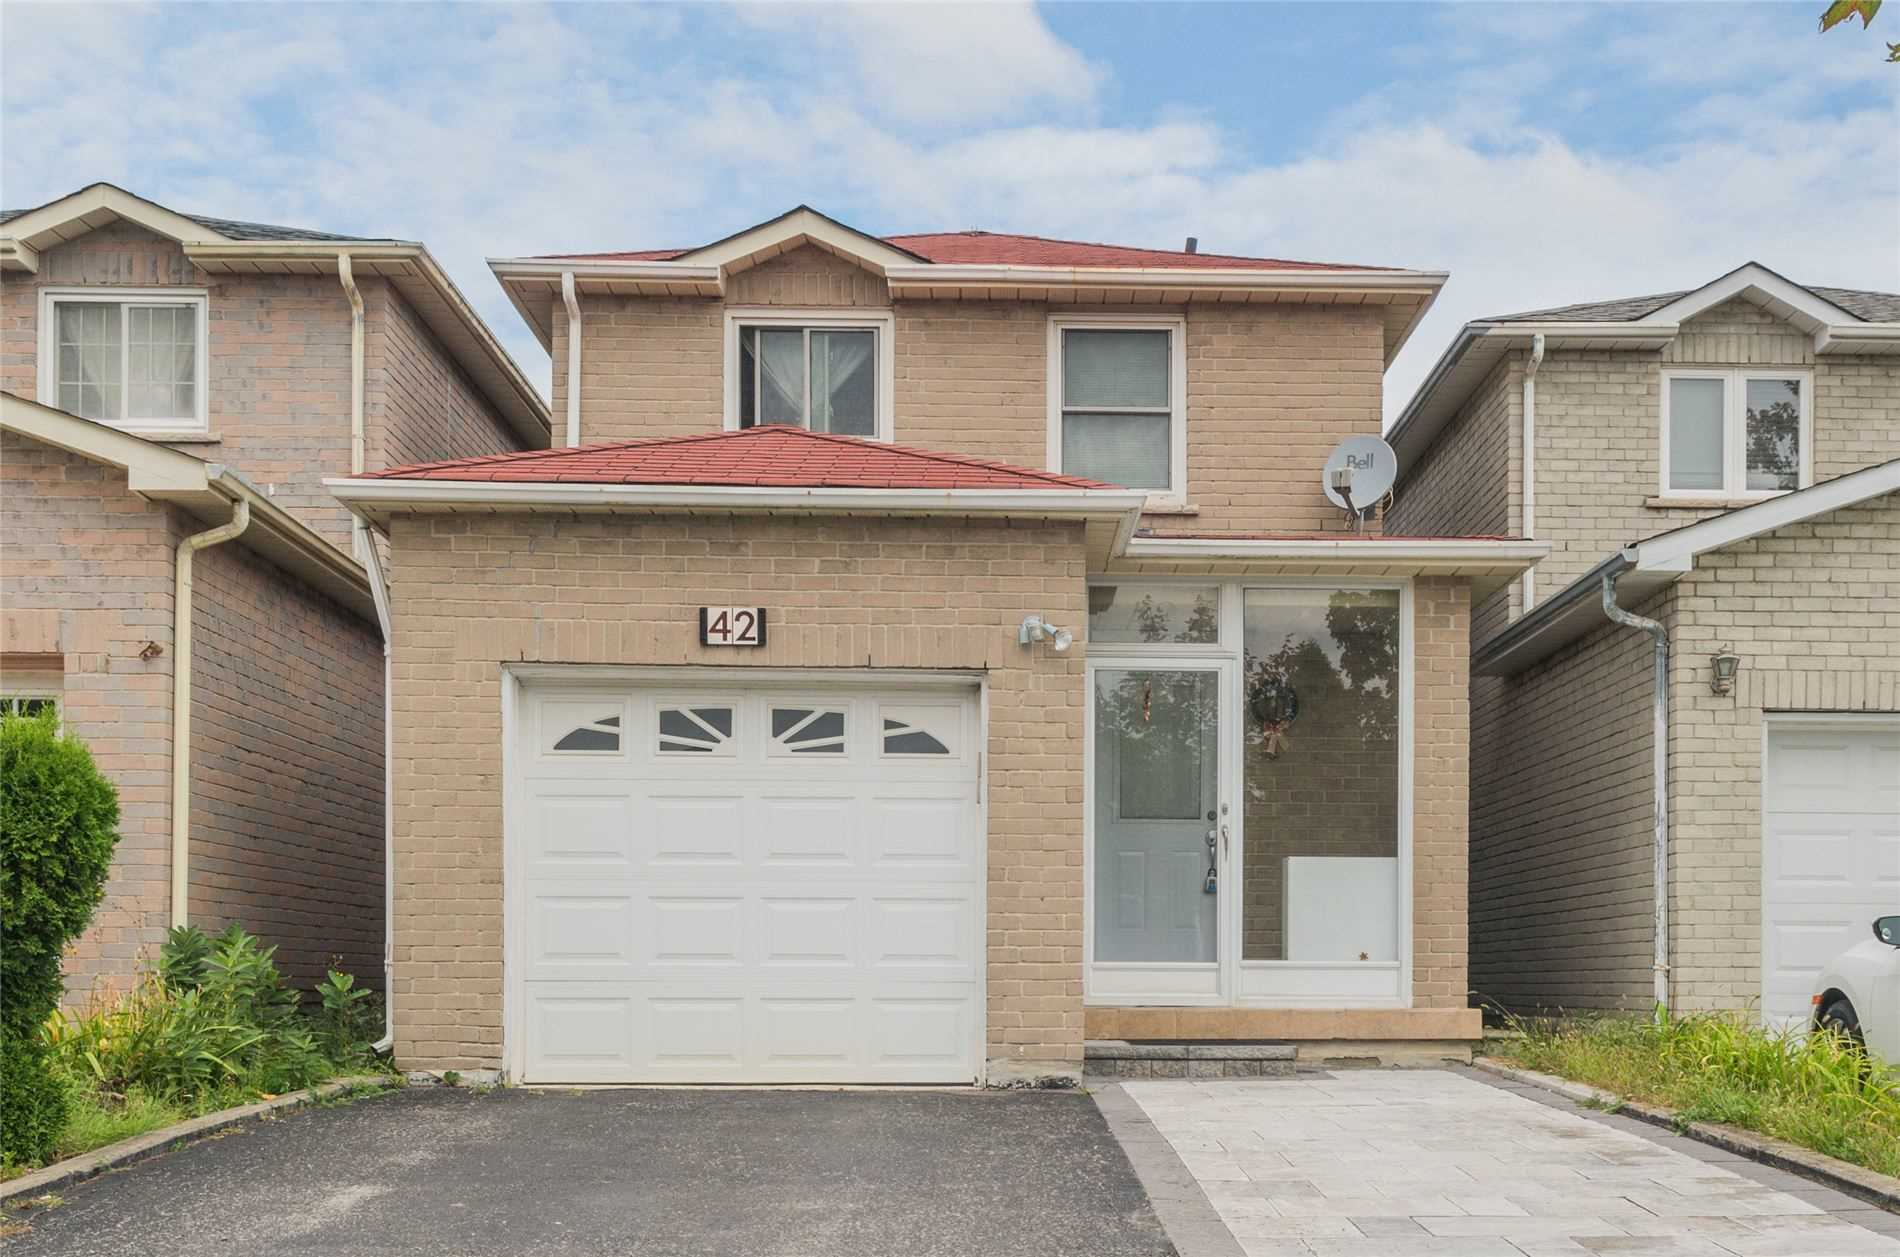 pictures of house for sale MLS: N4727280 located at 42 Ingram Rd, Markham L3S1T1